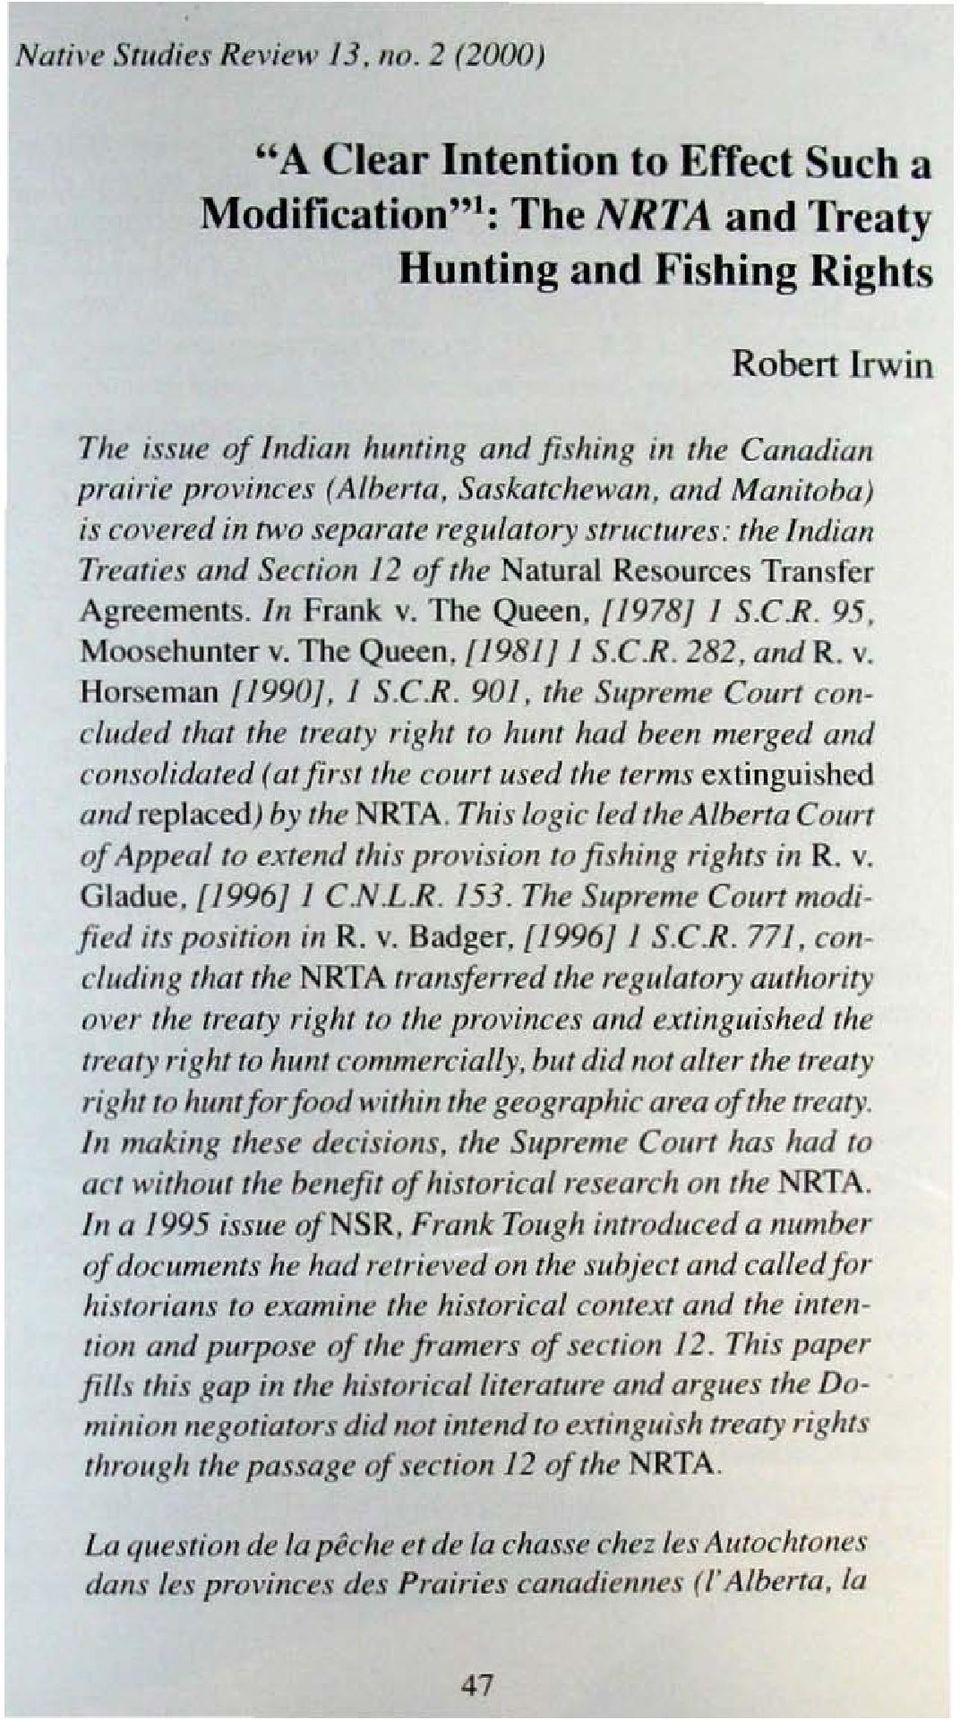 provillces (Alberta, Saskatchewan. alld Mallitoba) is covered;n two l'eparate regulatory struclllres: the Indian Treaties alld Section 12 of the NalUral Resources Transfer Agreements, III Frank v.